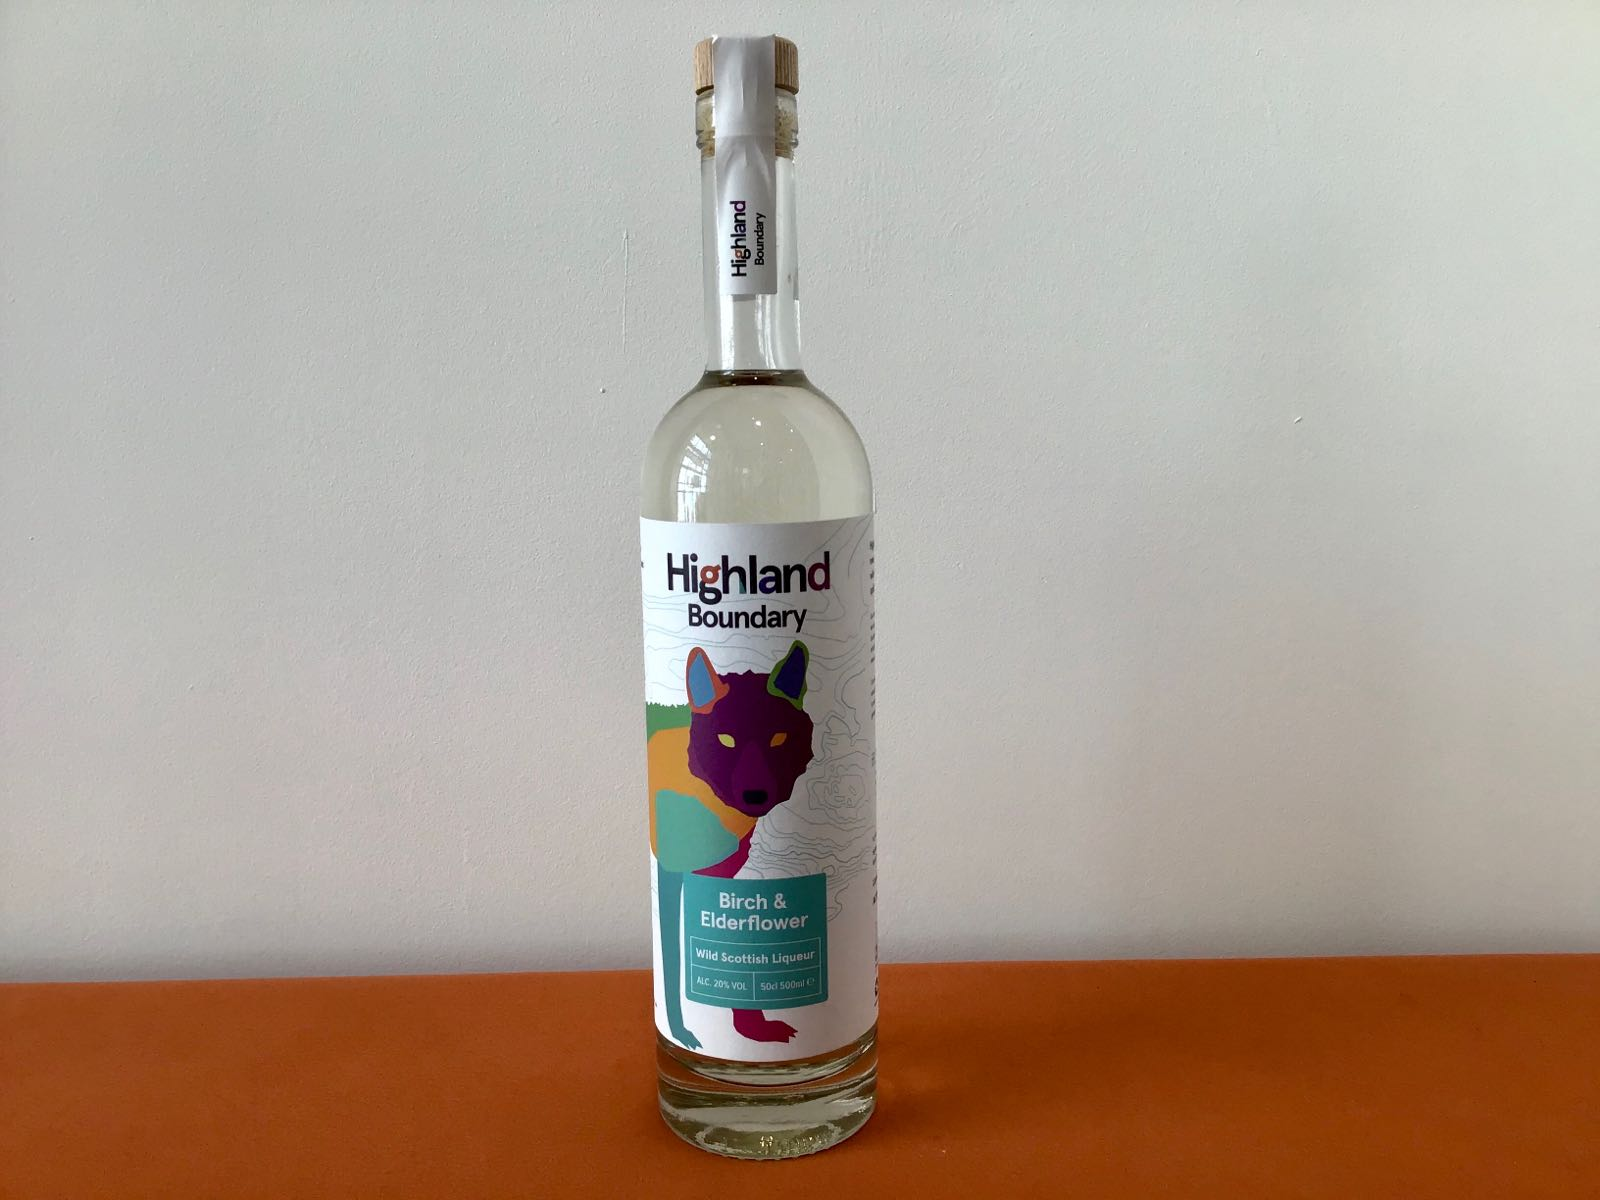 Highland Boundary: Birch & Elderflower liqueur